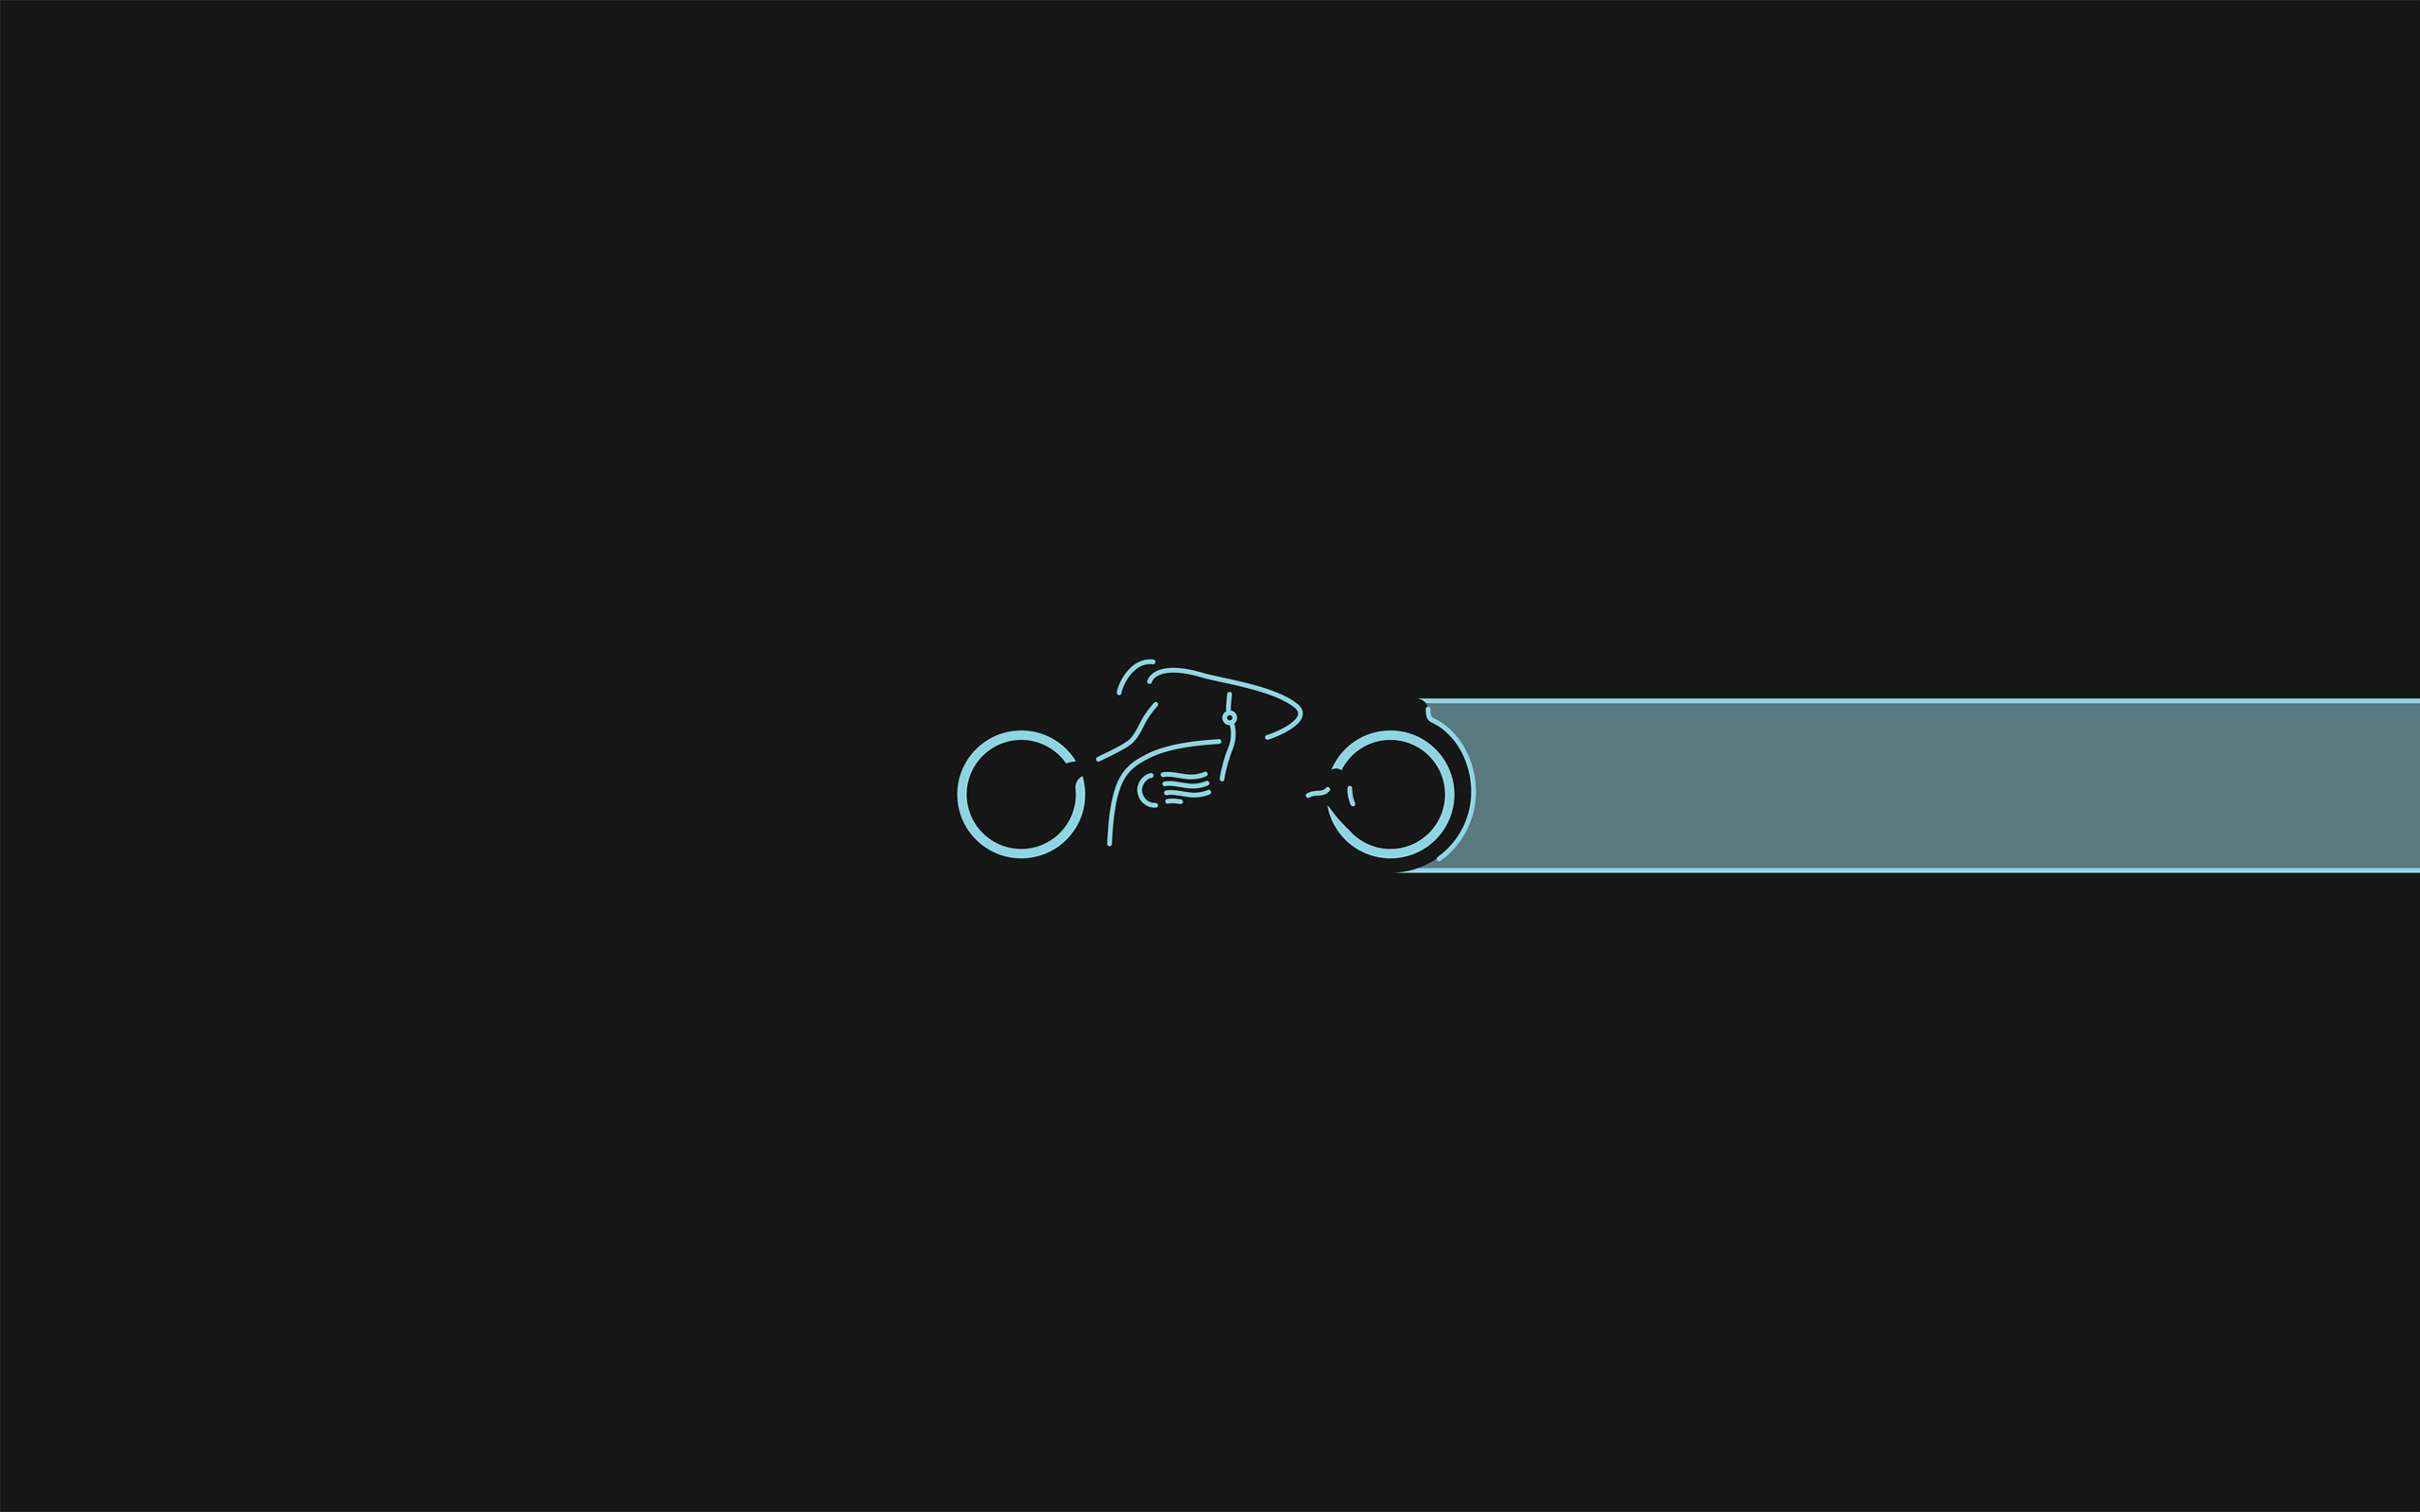 Minimalist Wallpaper-28 [2560x1600]